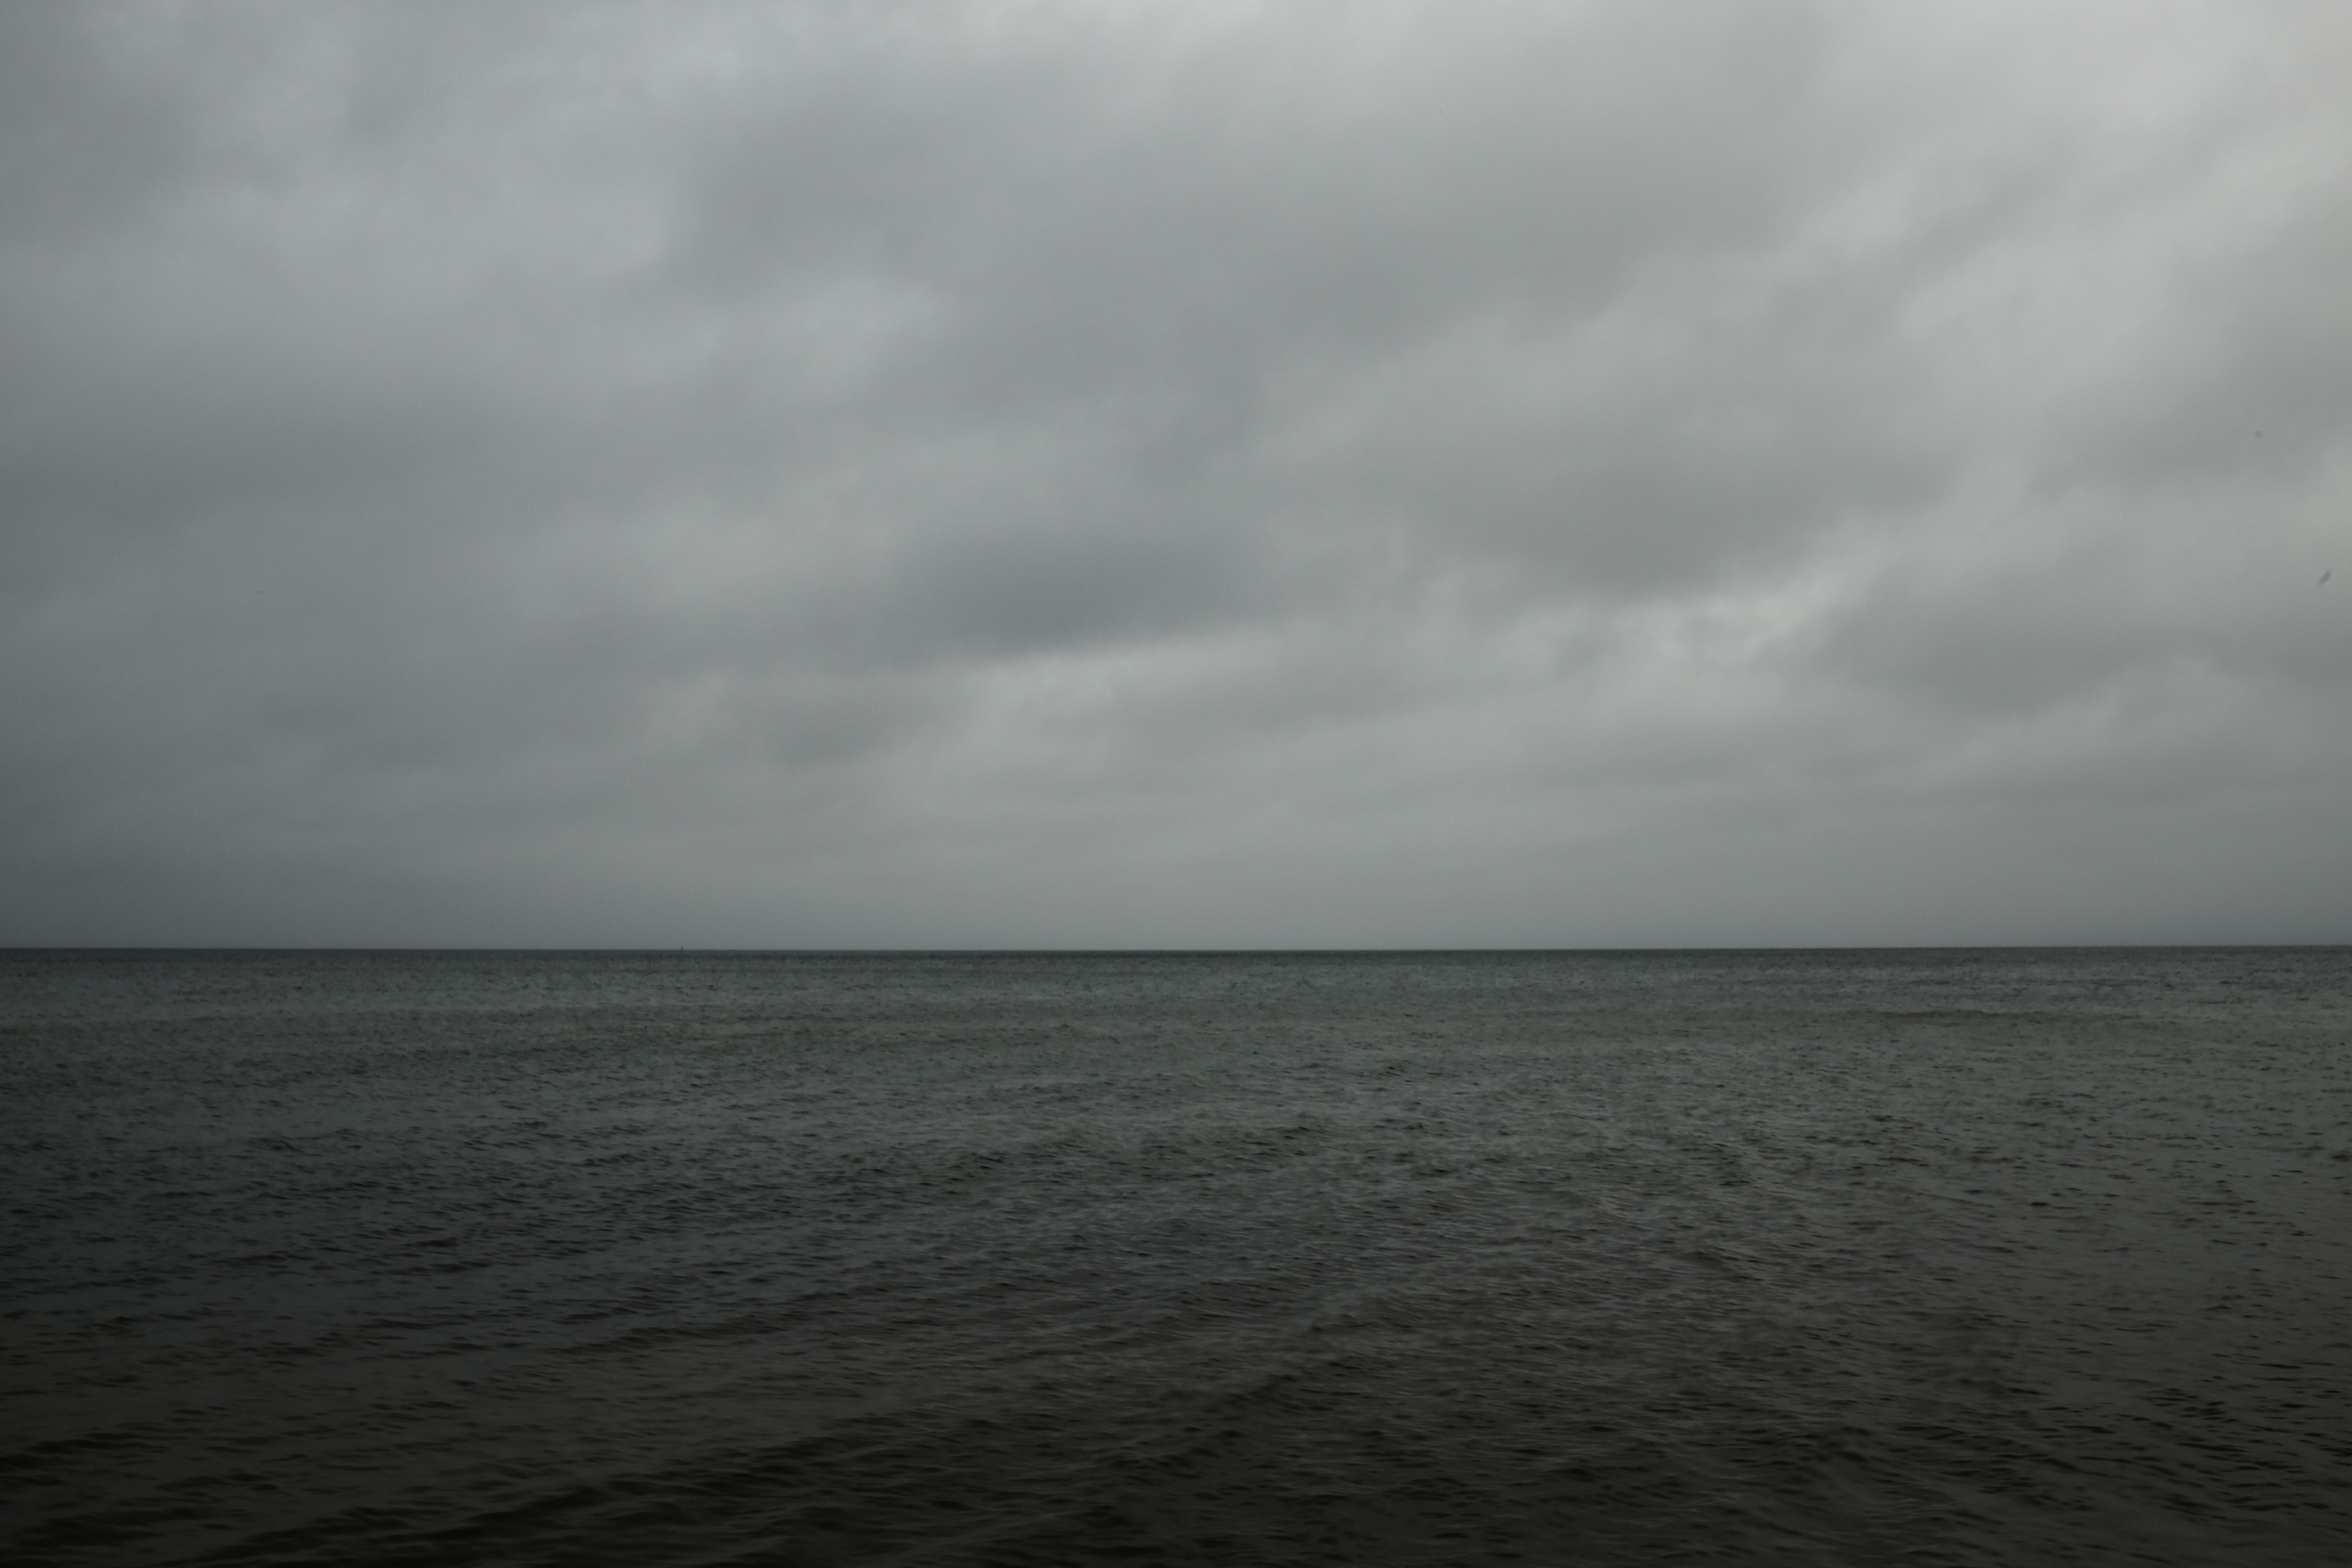 The Baltic Sea, 2015